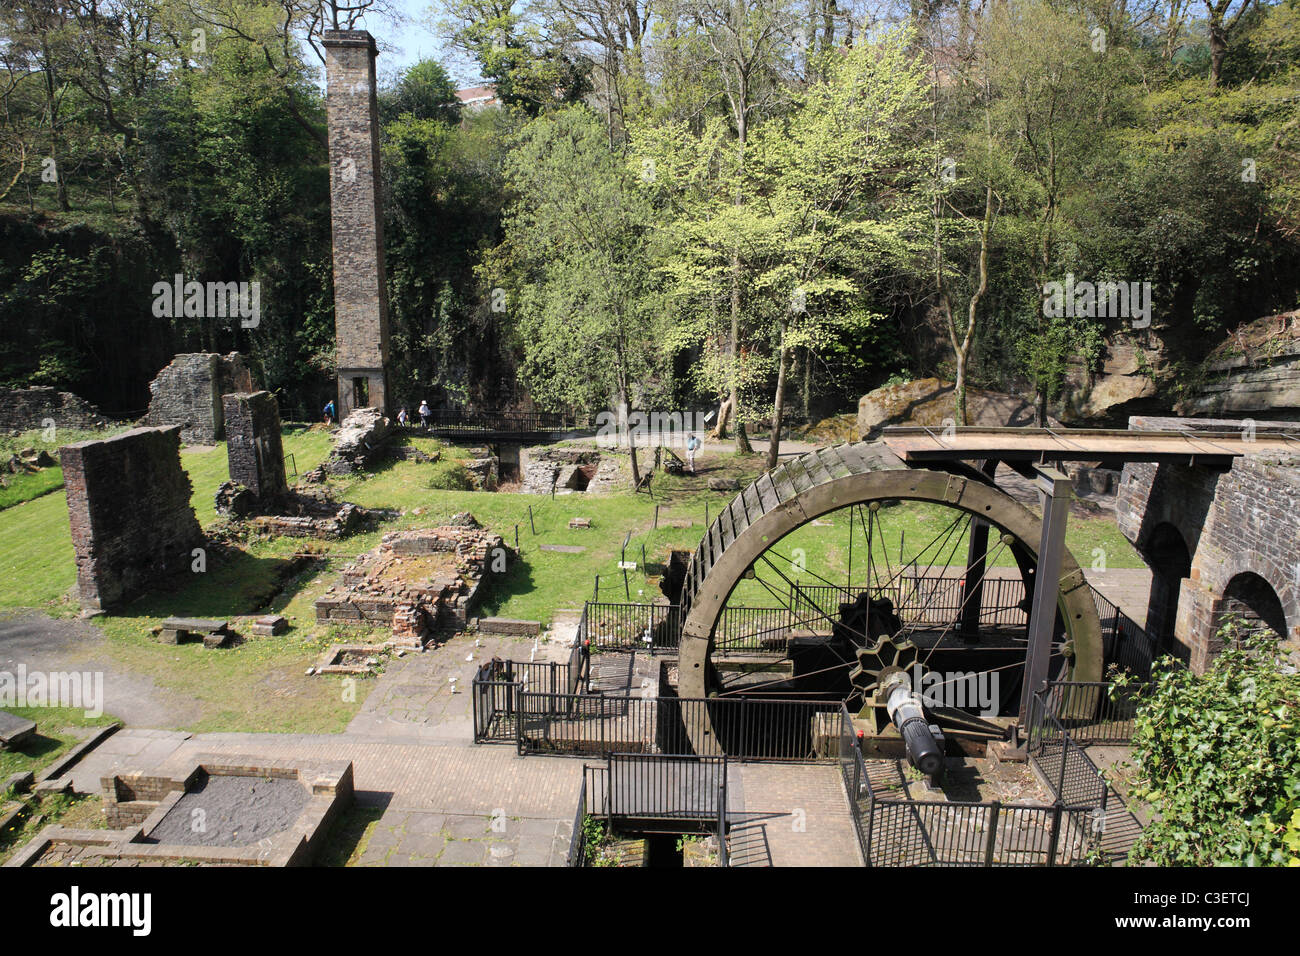 Waterwheel at the remains of Aberdulais tinplate works, Neath, South Wales, UK - Stock Image